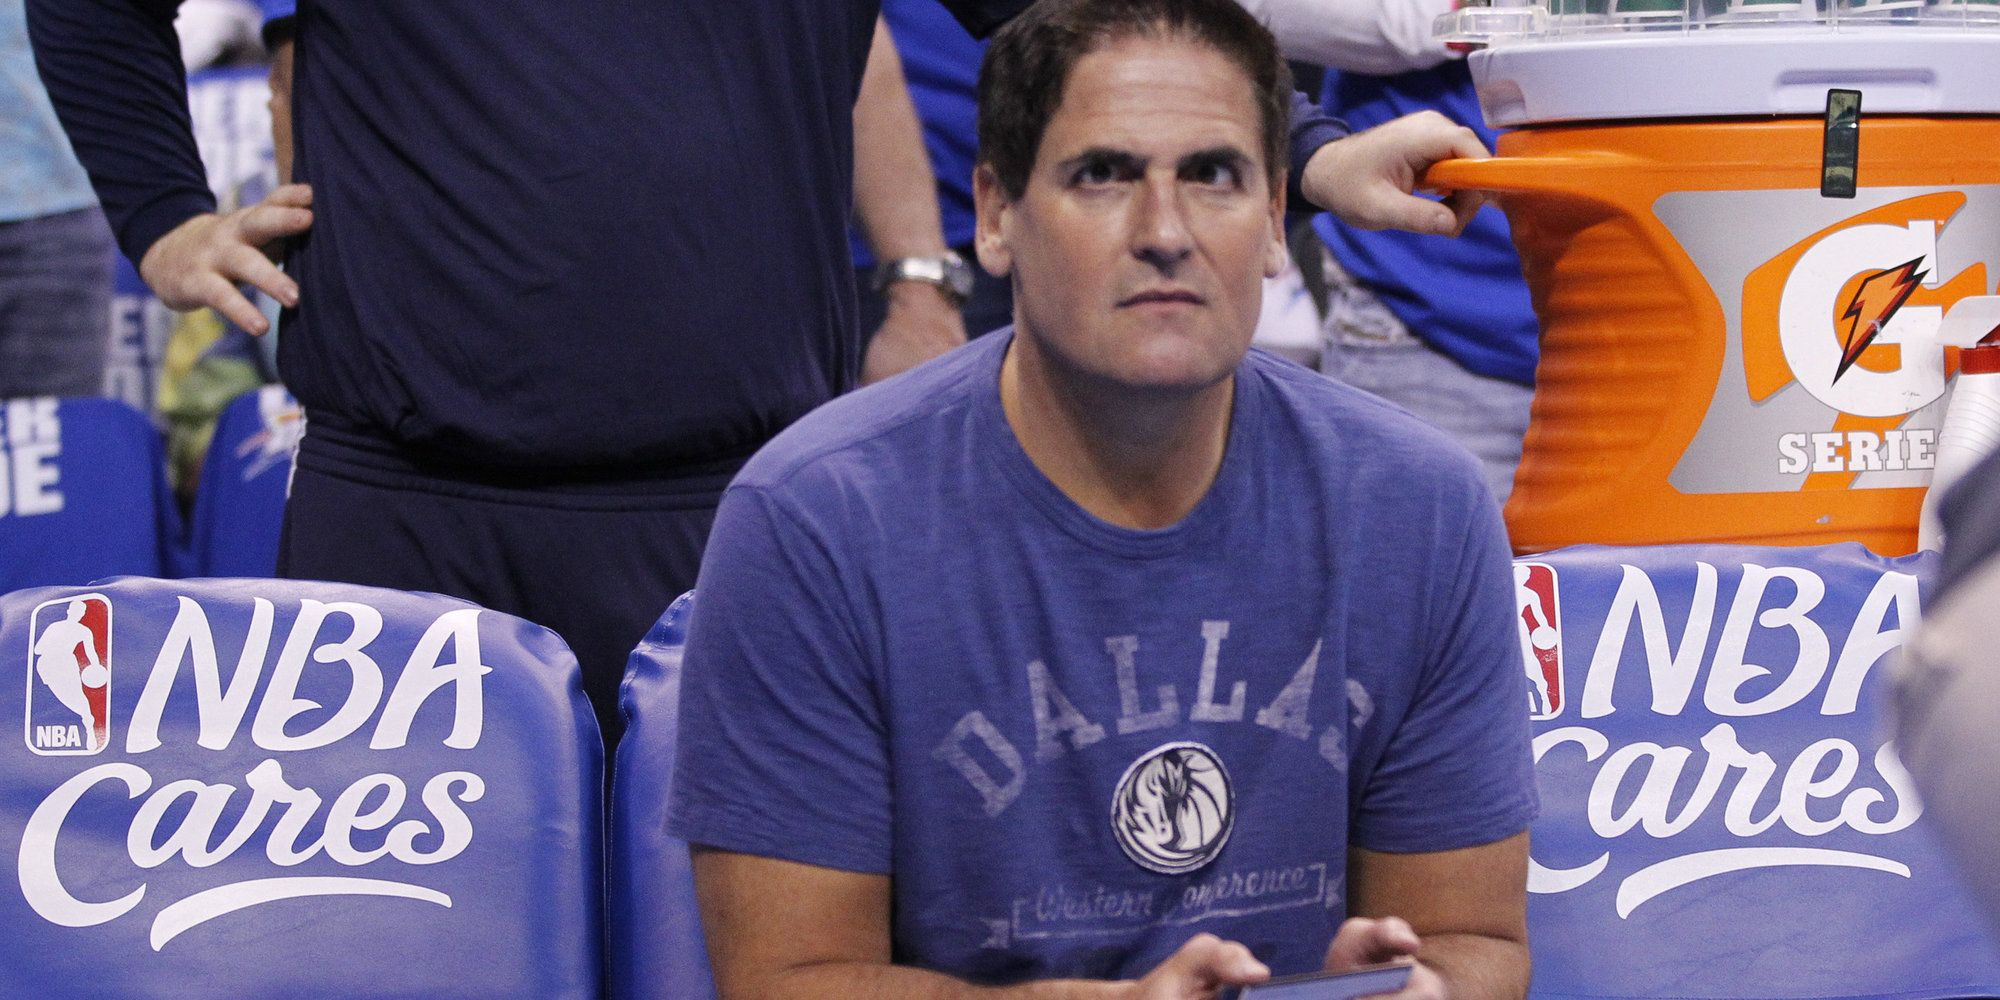 Mark Cuban Offers To Give $10 Million To Charity If Trump Can Explain His Own Policies | Huffington Post